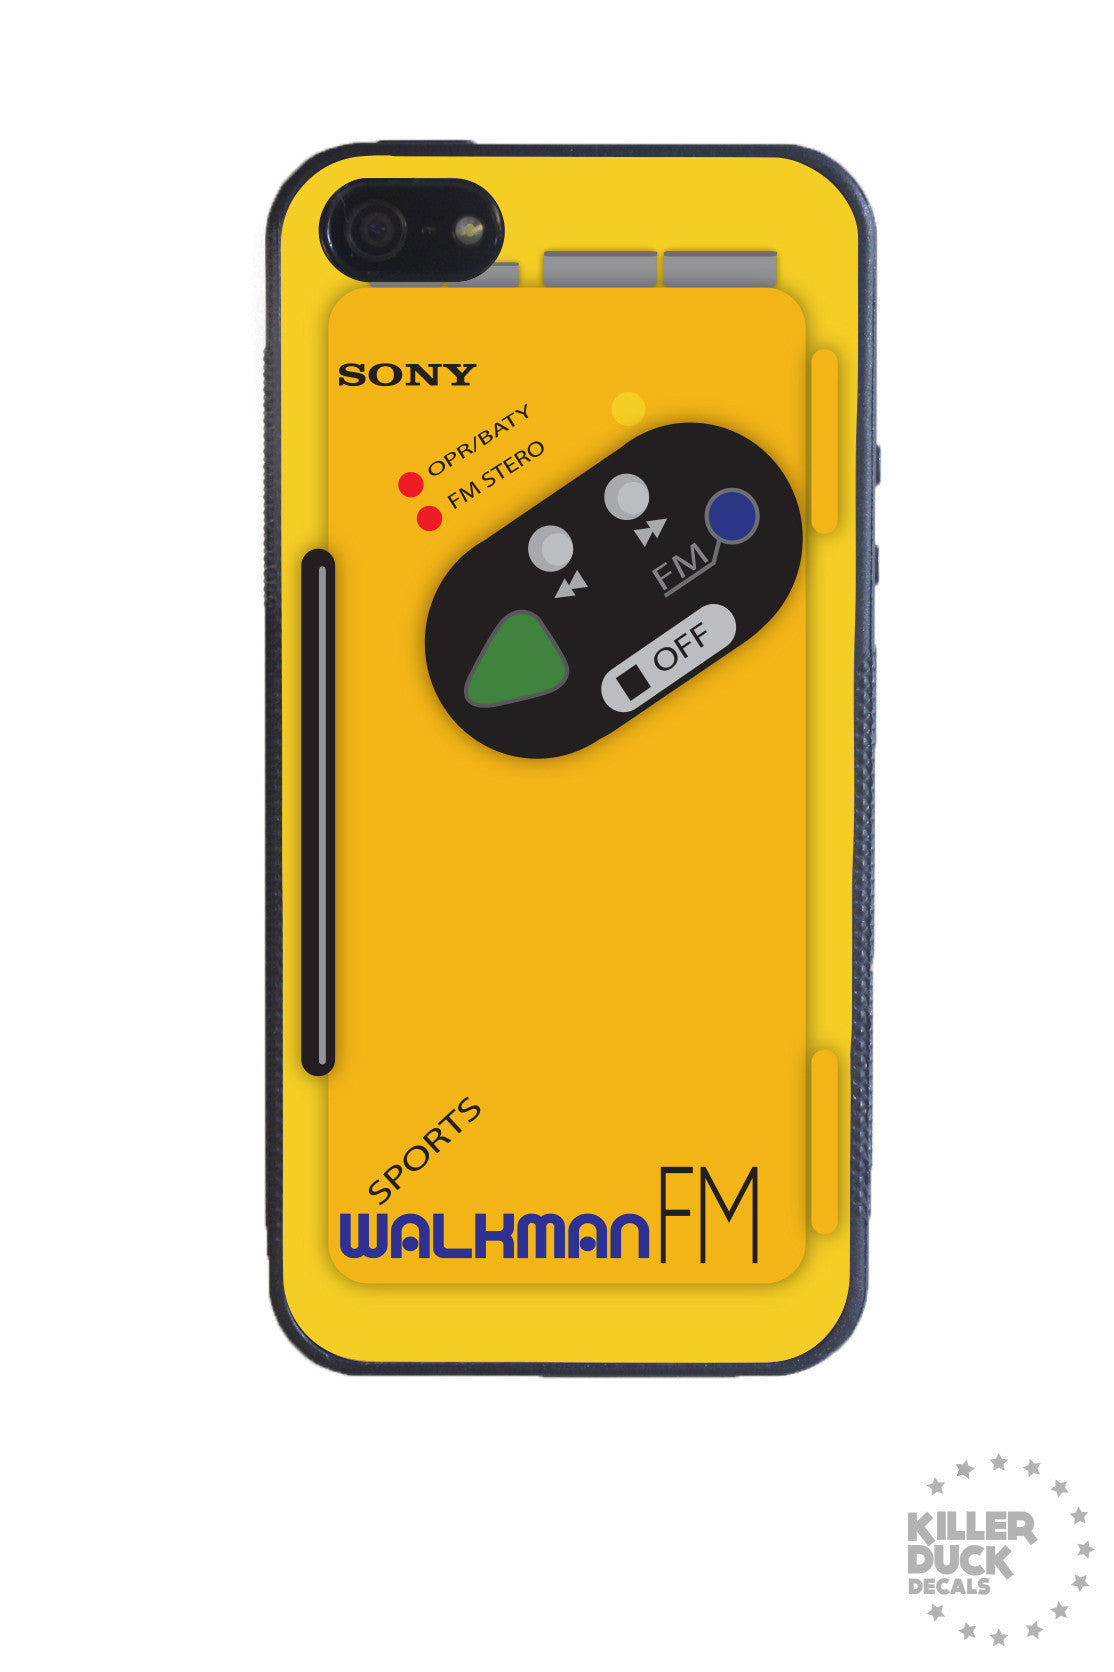 Sony walkman iphone case killer duck decals